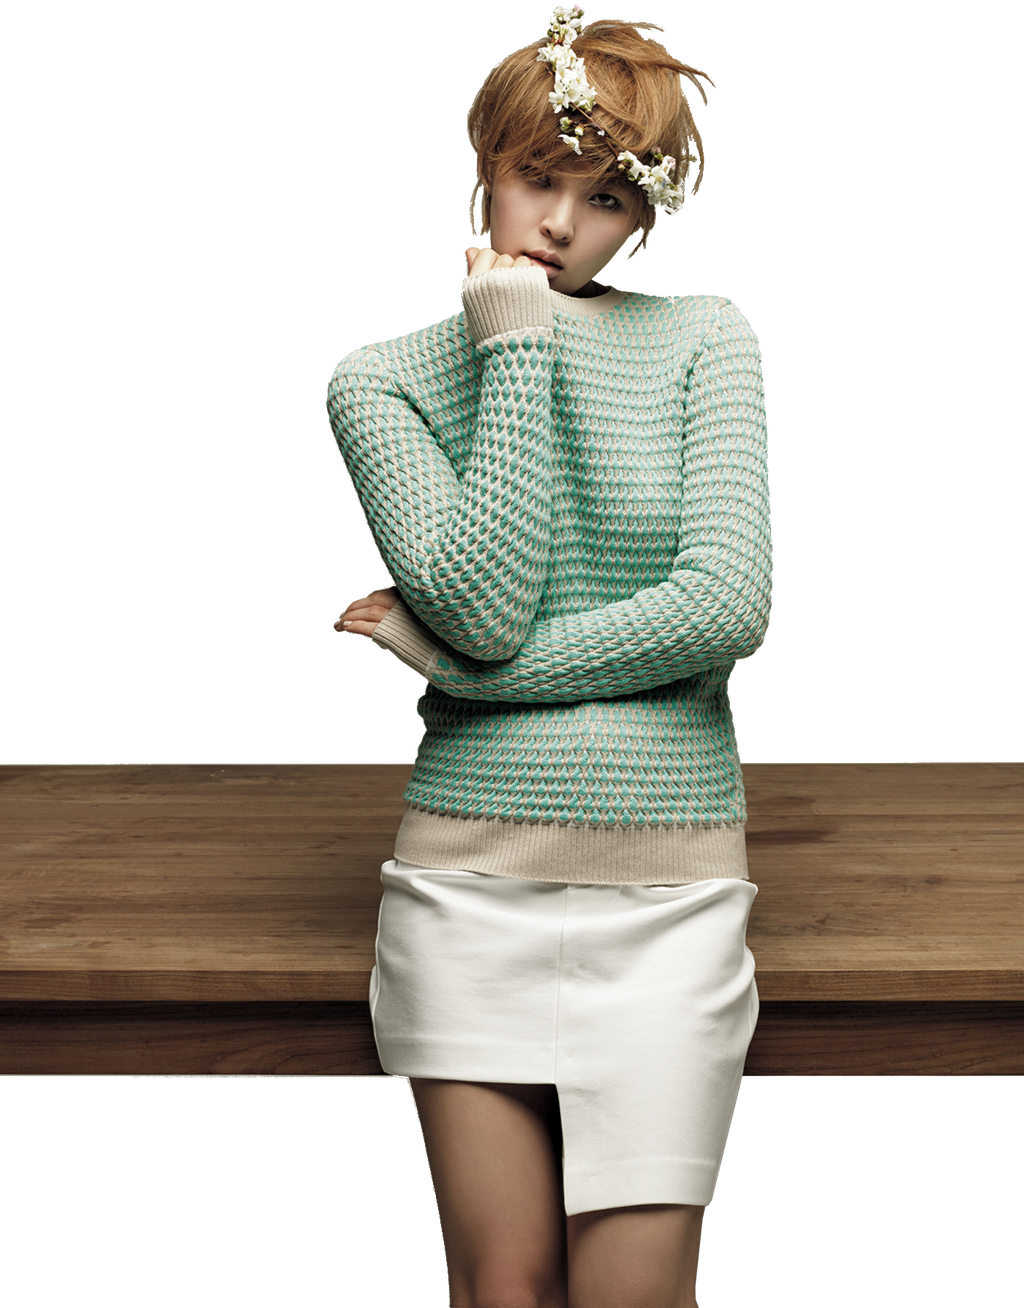 [PNG] 4minute_013